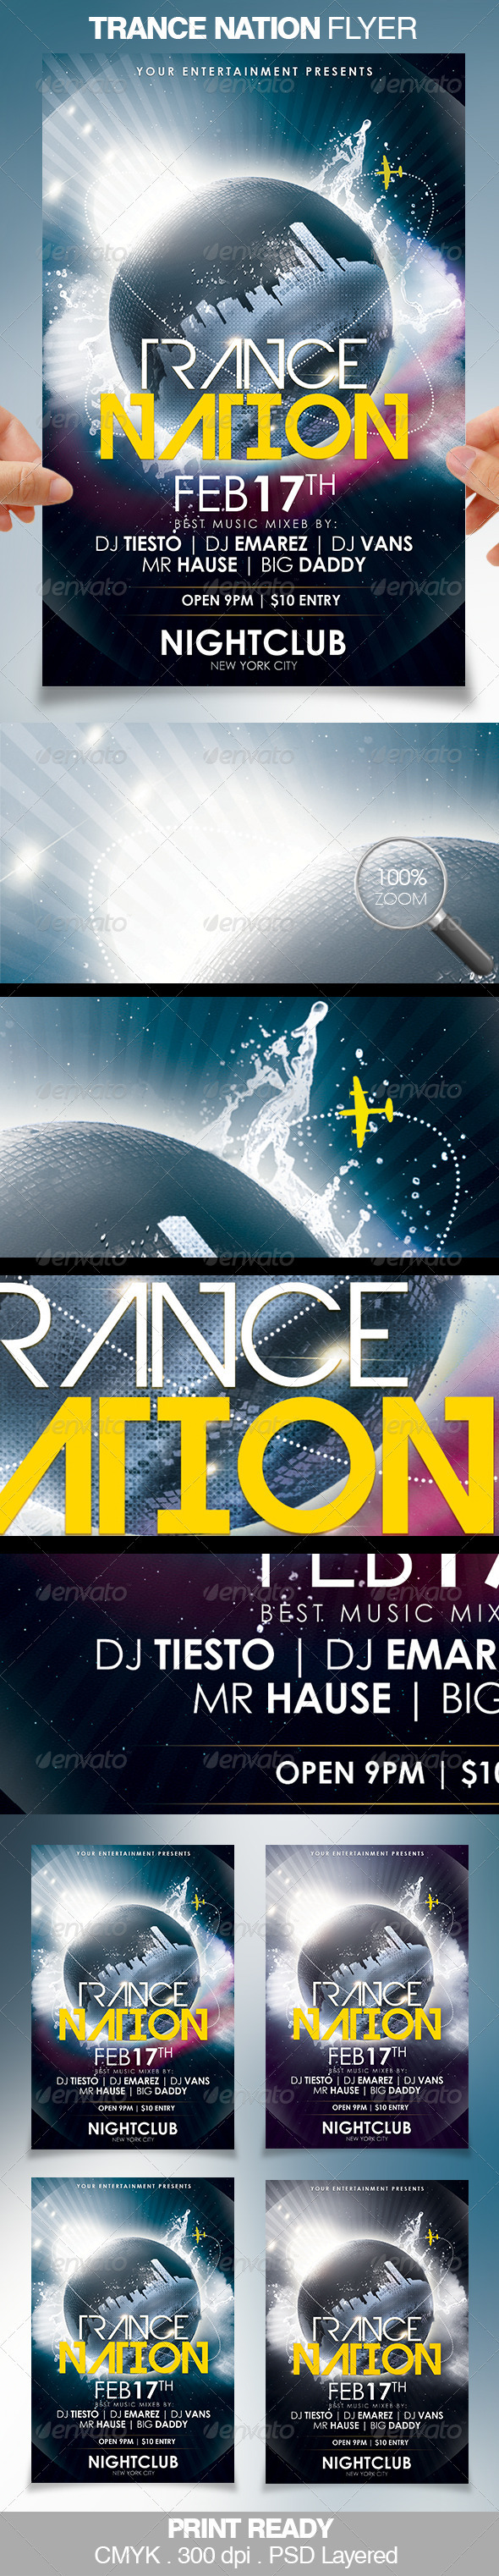 Trance Nation Party Flyer - Clubs & Parties Events